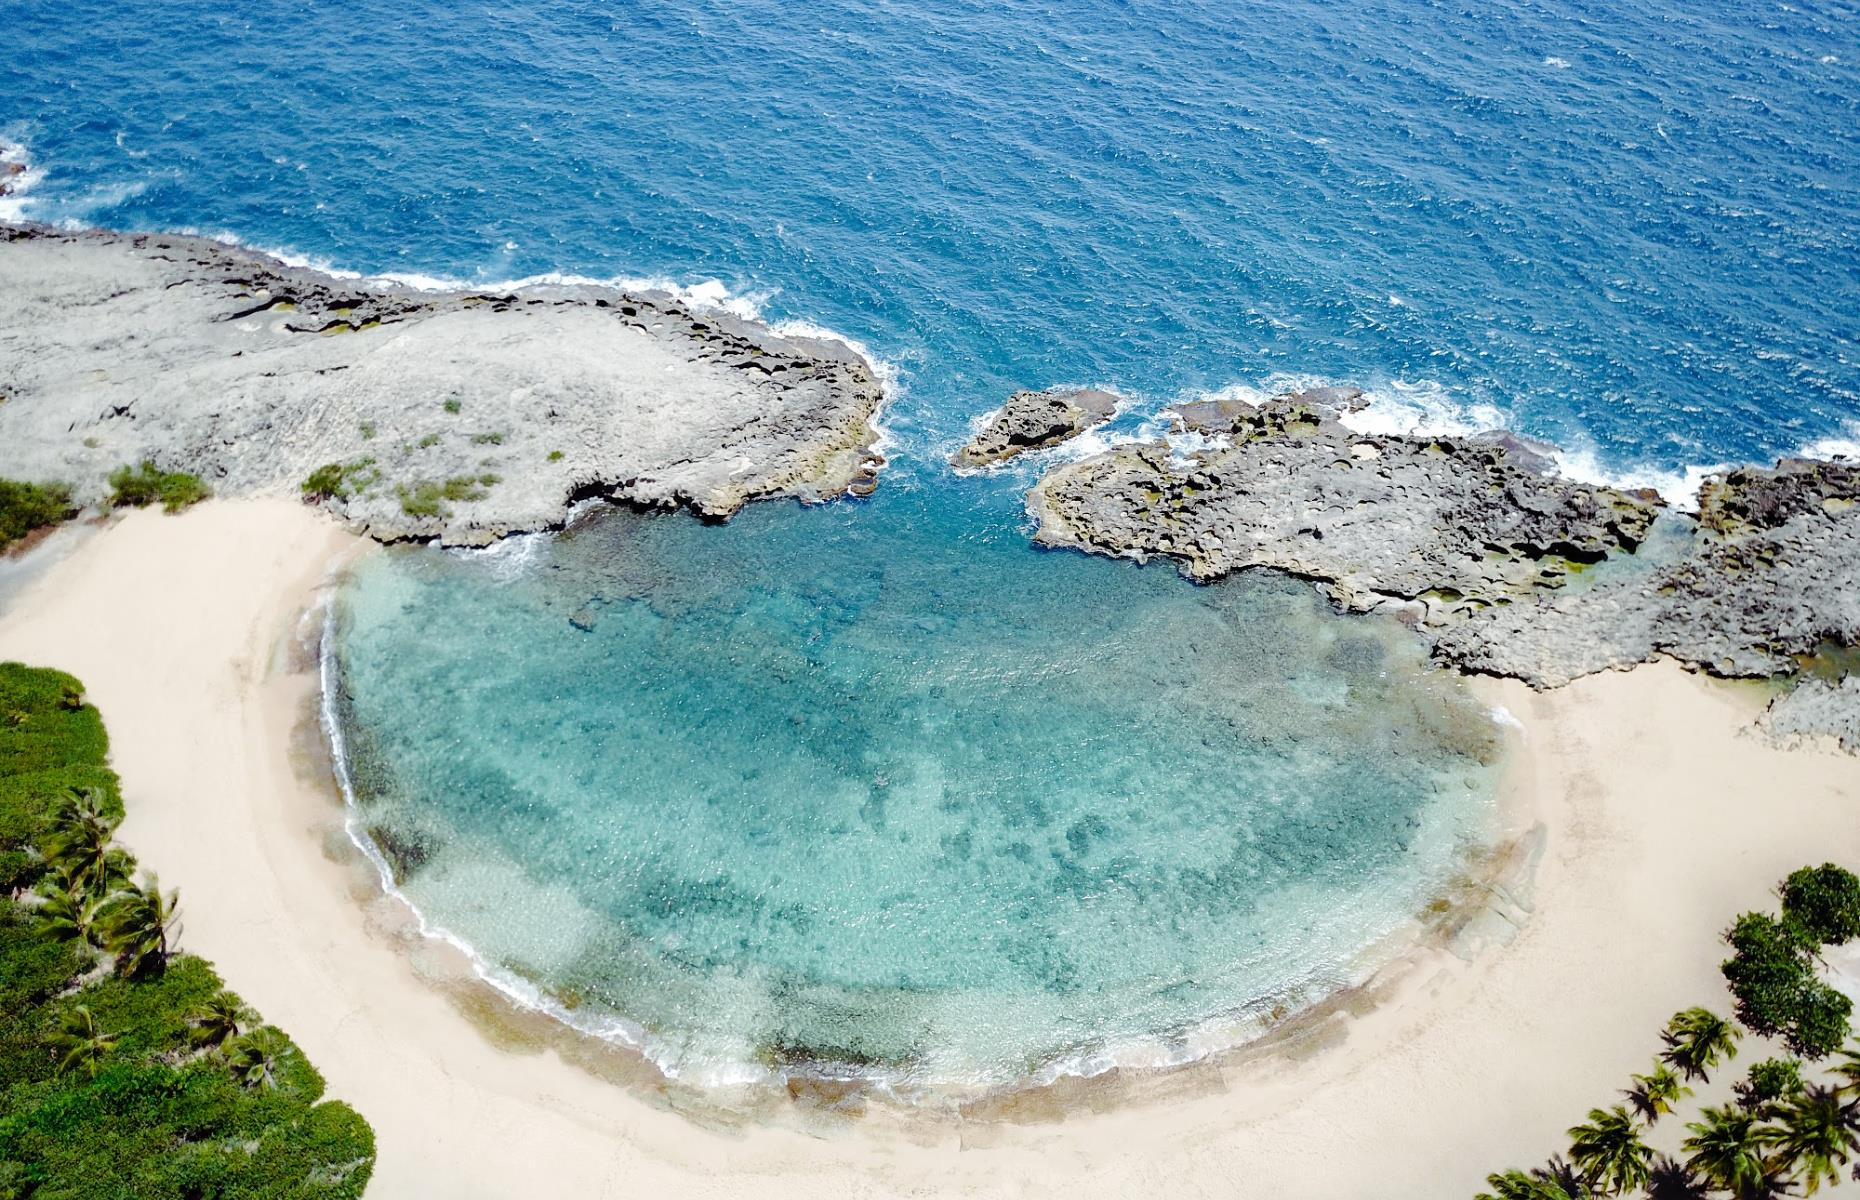 Slide 9 of 31: Few things top the feeling of swimming in a natural ocean pool. The half-moon of turquoise water at Mar Chiquita on the north coast of Puerto Rico is almost fully surrounded by limestone rock, with a small gateway that allows the ocean water to calmly settle in.